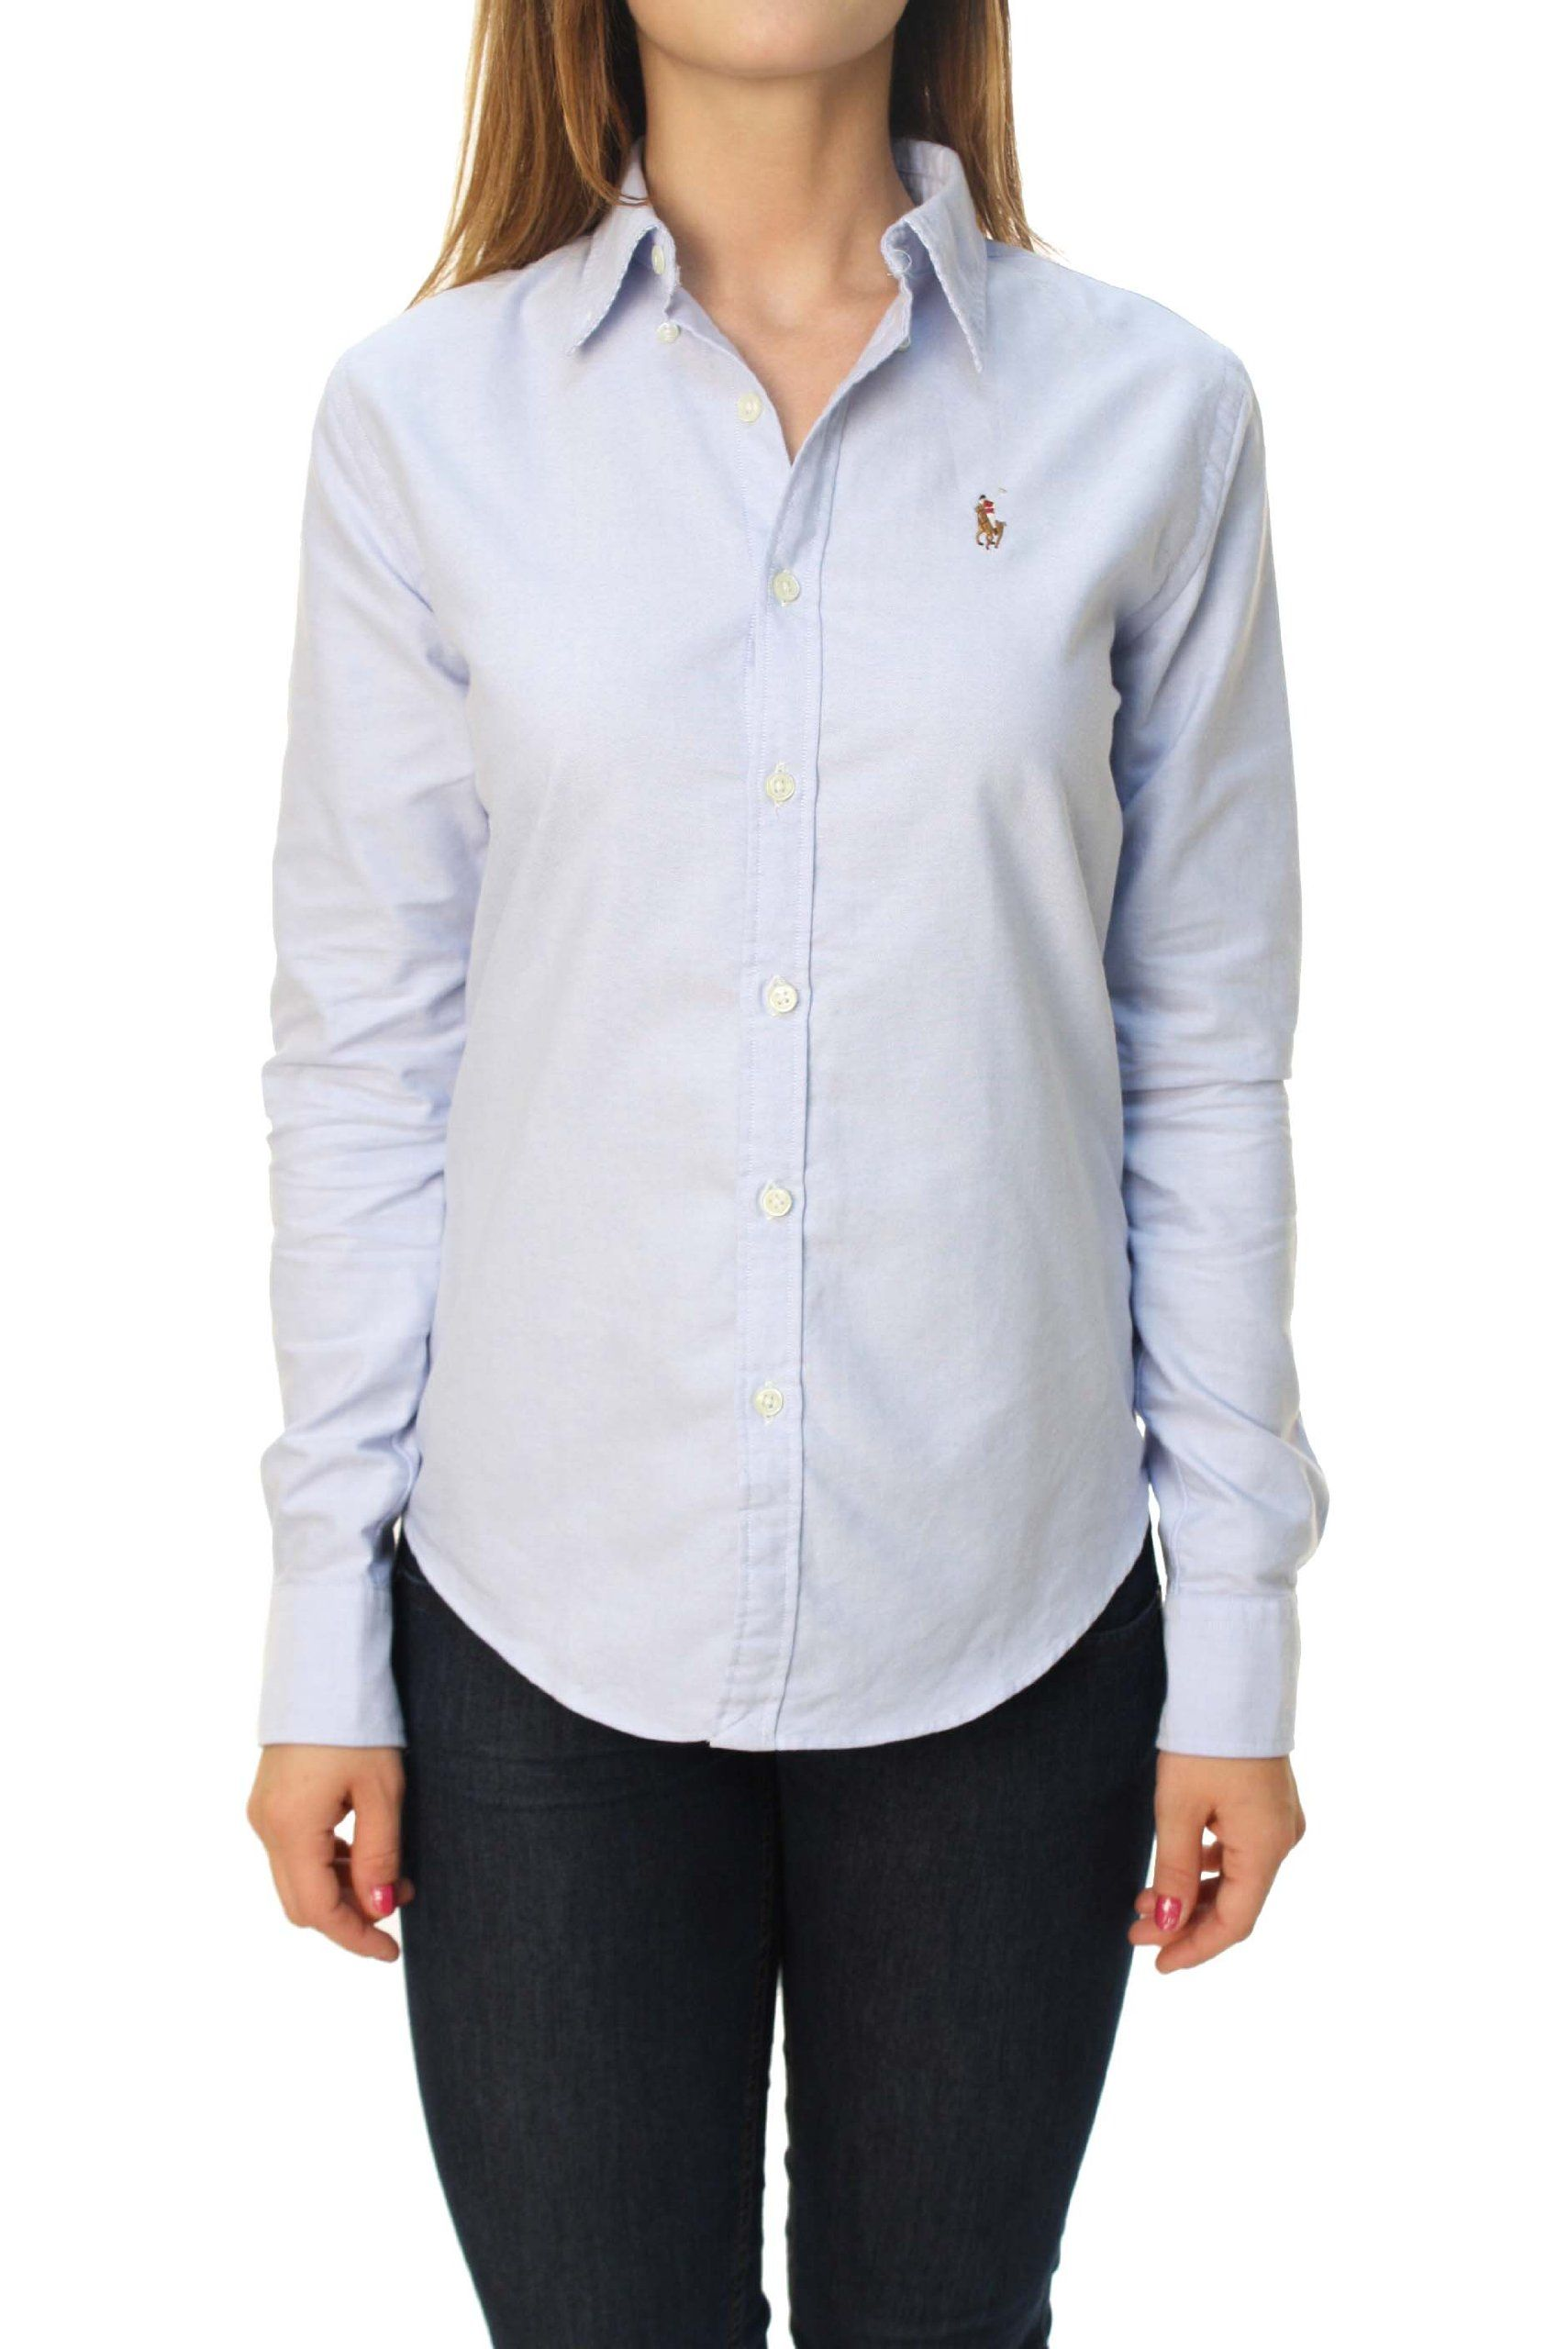 70be5c3ce957 Polo Ralph Lauren Women s Slim Fit Stripe Oxford Button Down Shirt at Amazon  Women s Clothing store